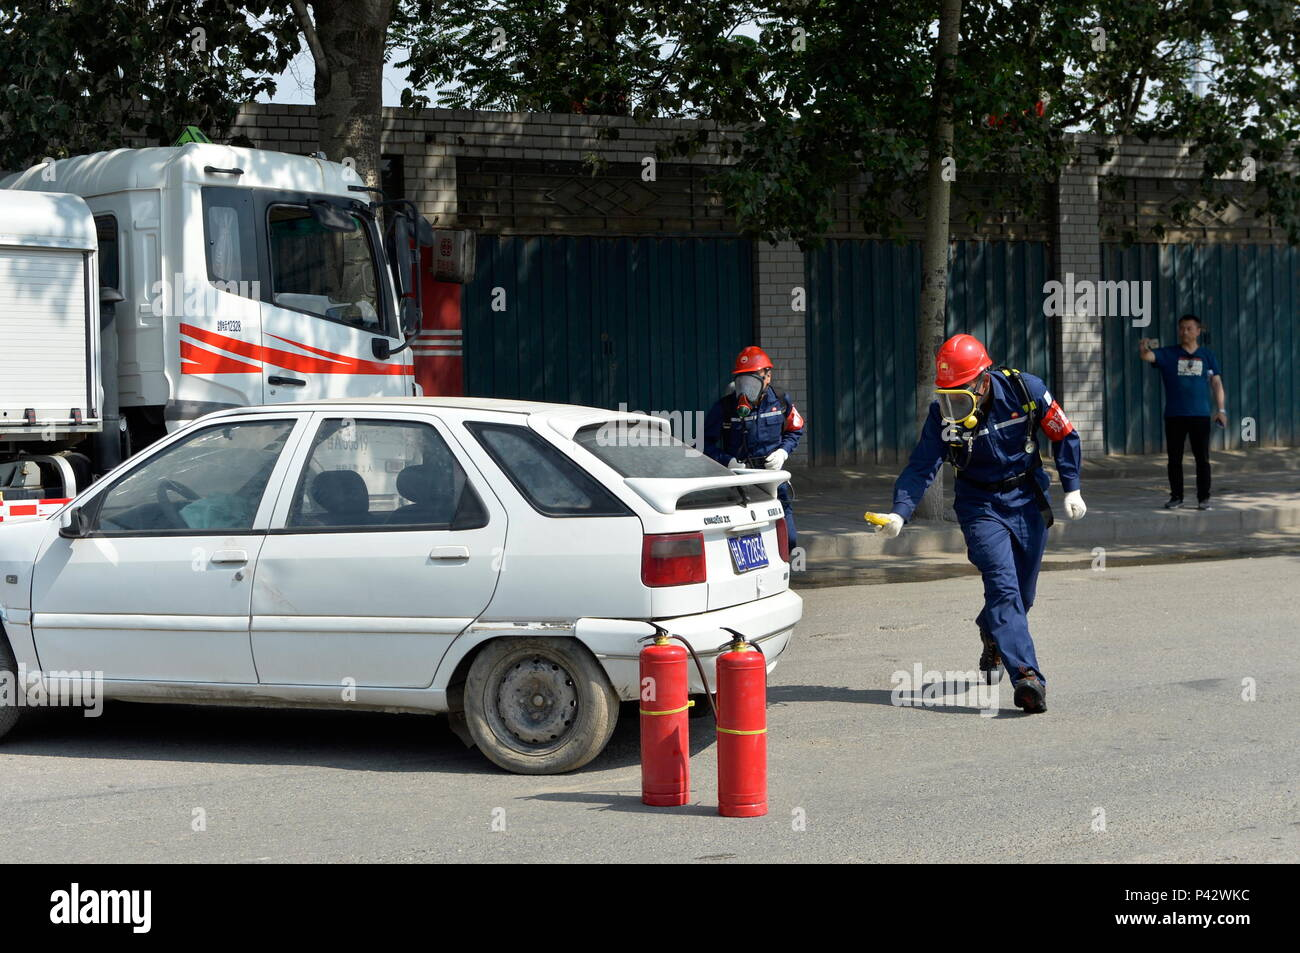 Lanzhou, China's Gansu Province. 20th June, 2018. Staff members participate in a drill that deals with emergencies in the transportation of inflammable liquids in Lanzhou, northwest China's Gansu Province, June 20, 2018. Credit: Li Xiao/Xinhua/Alamy Live News - Stock Image